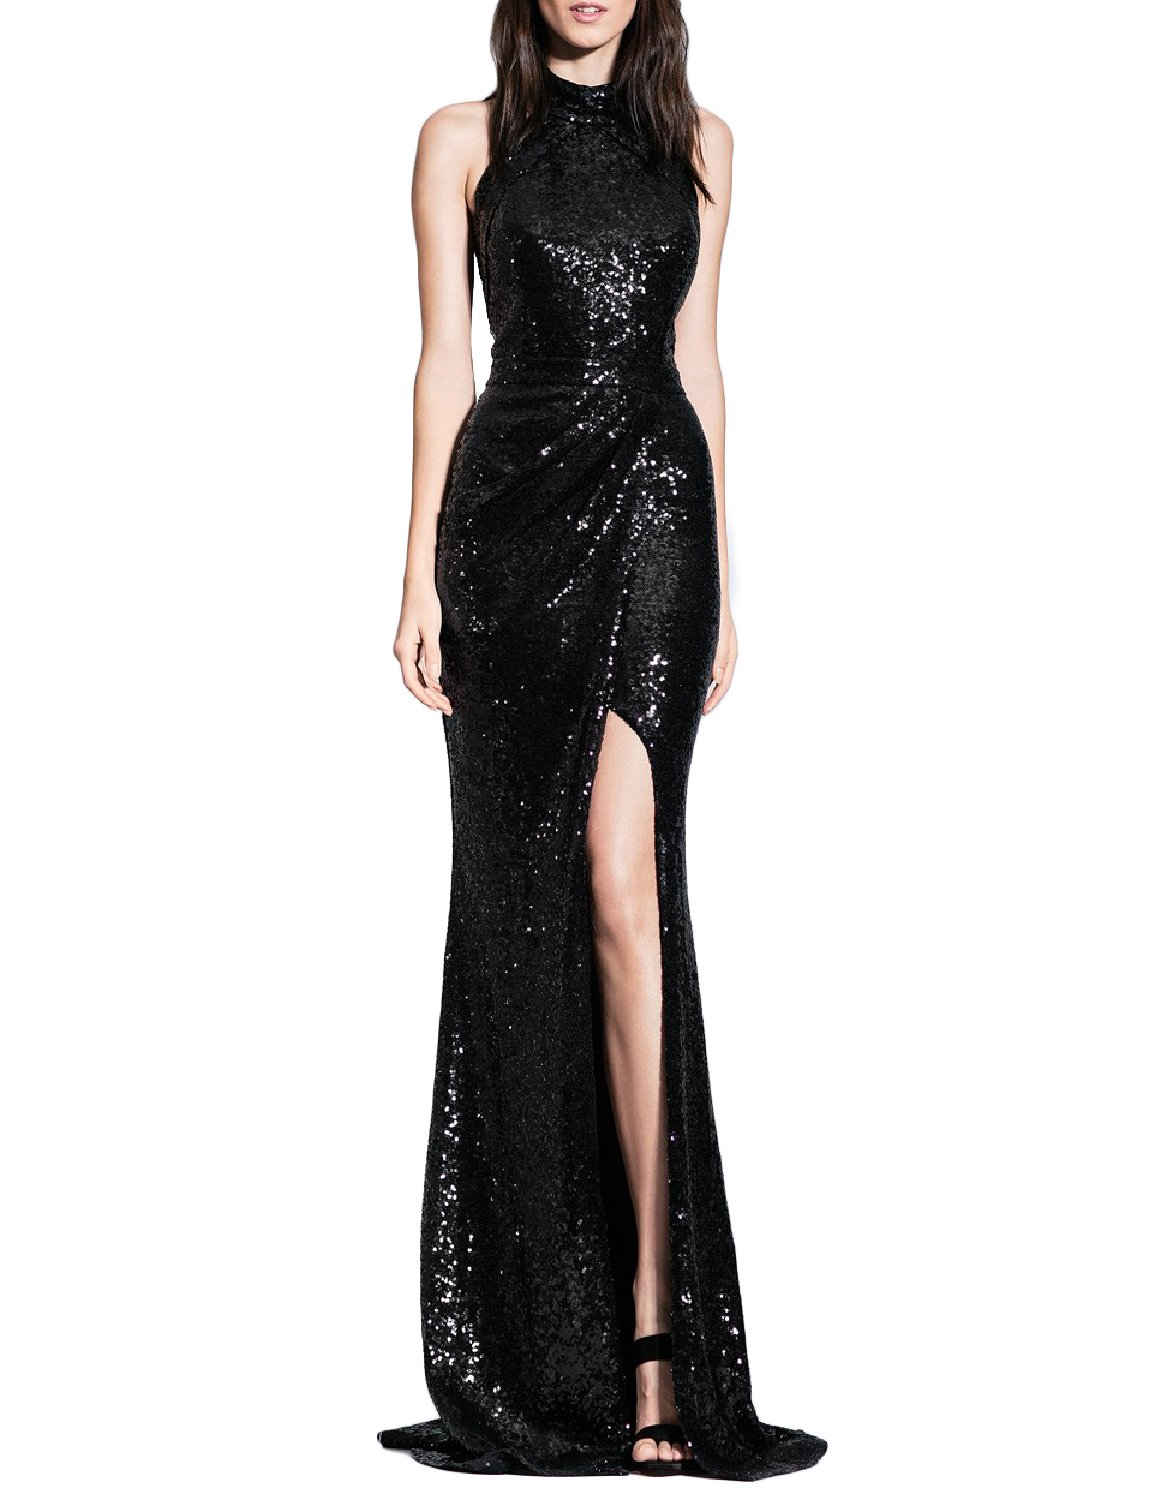 YSMei Women's Long Sequins Halter Evening Prom Dress Backless Cocktail Party Gowns Black 8